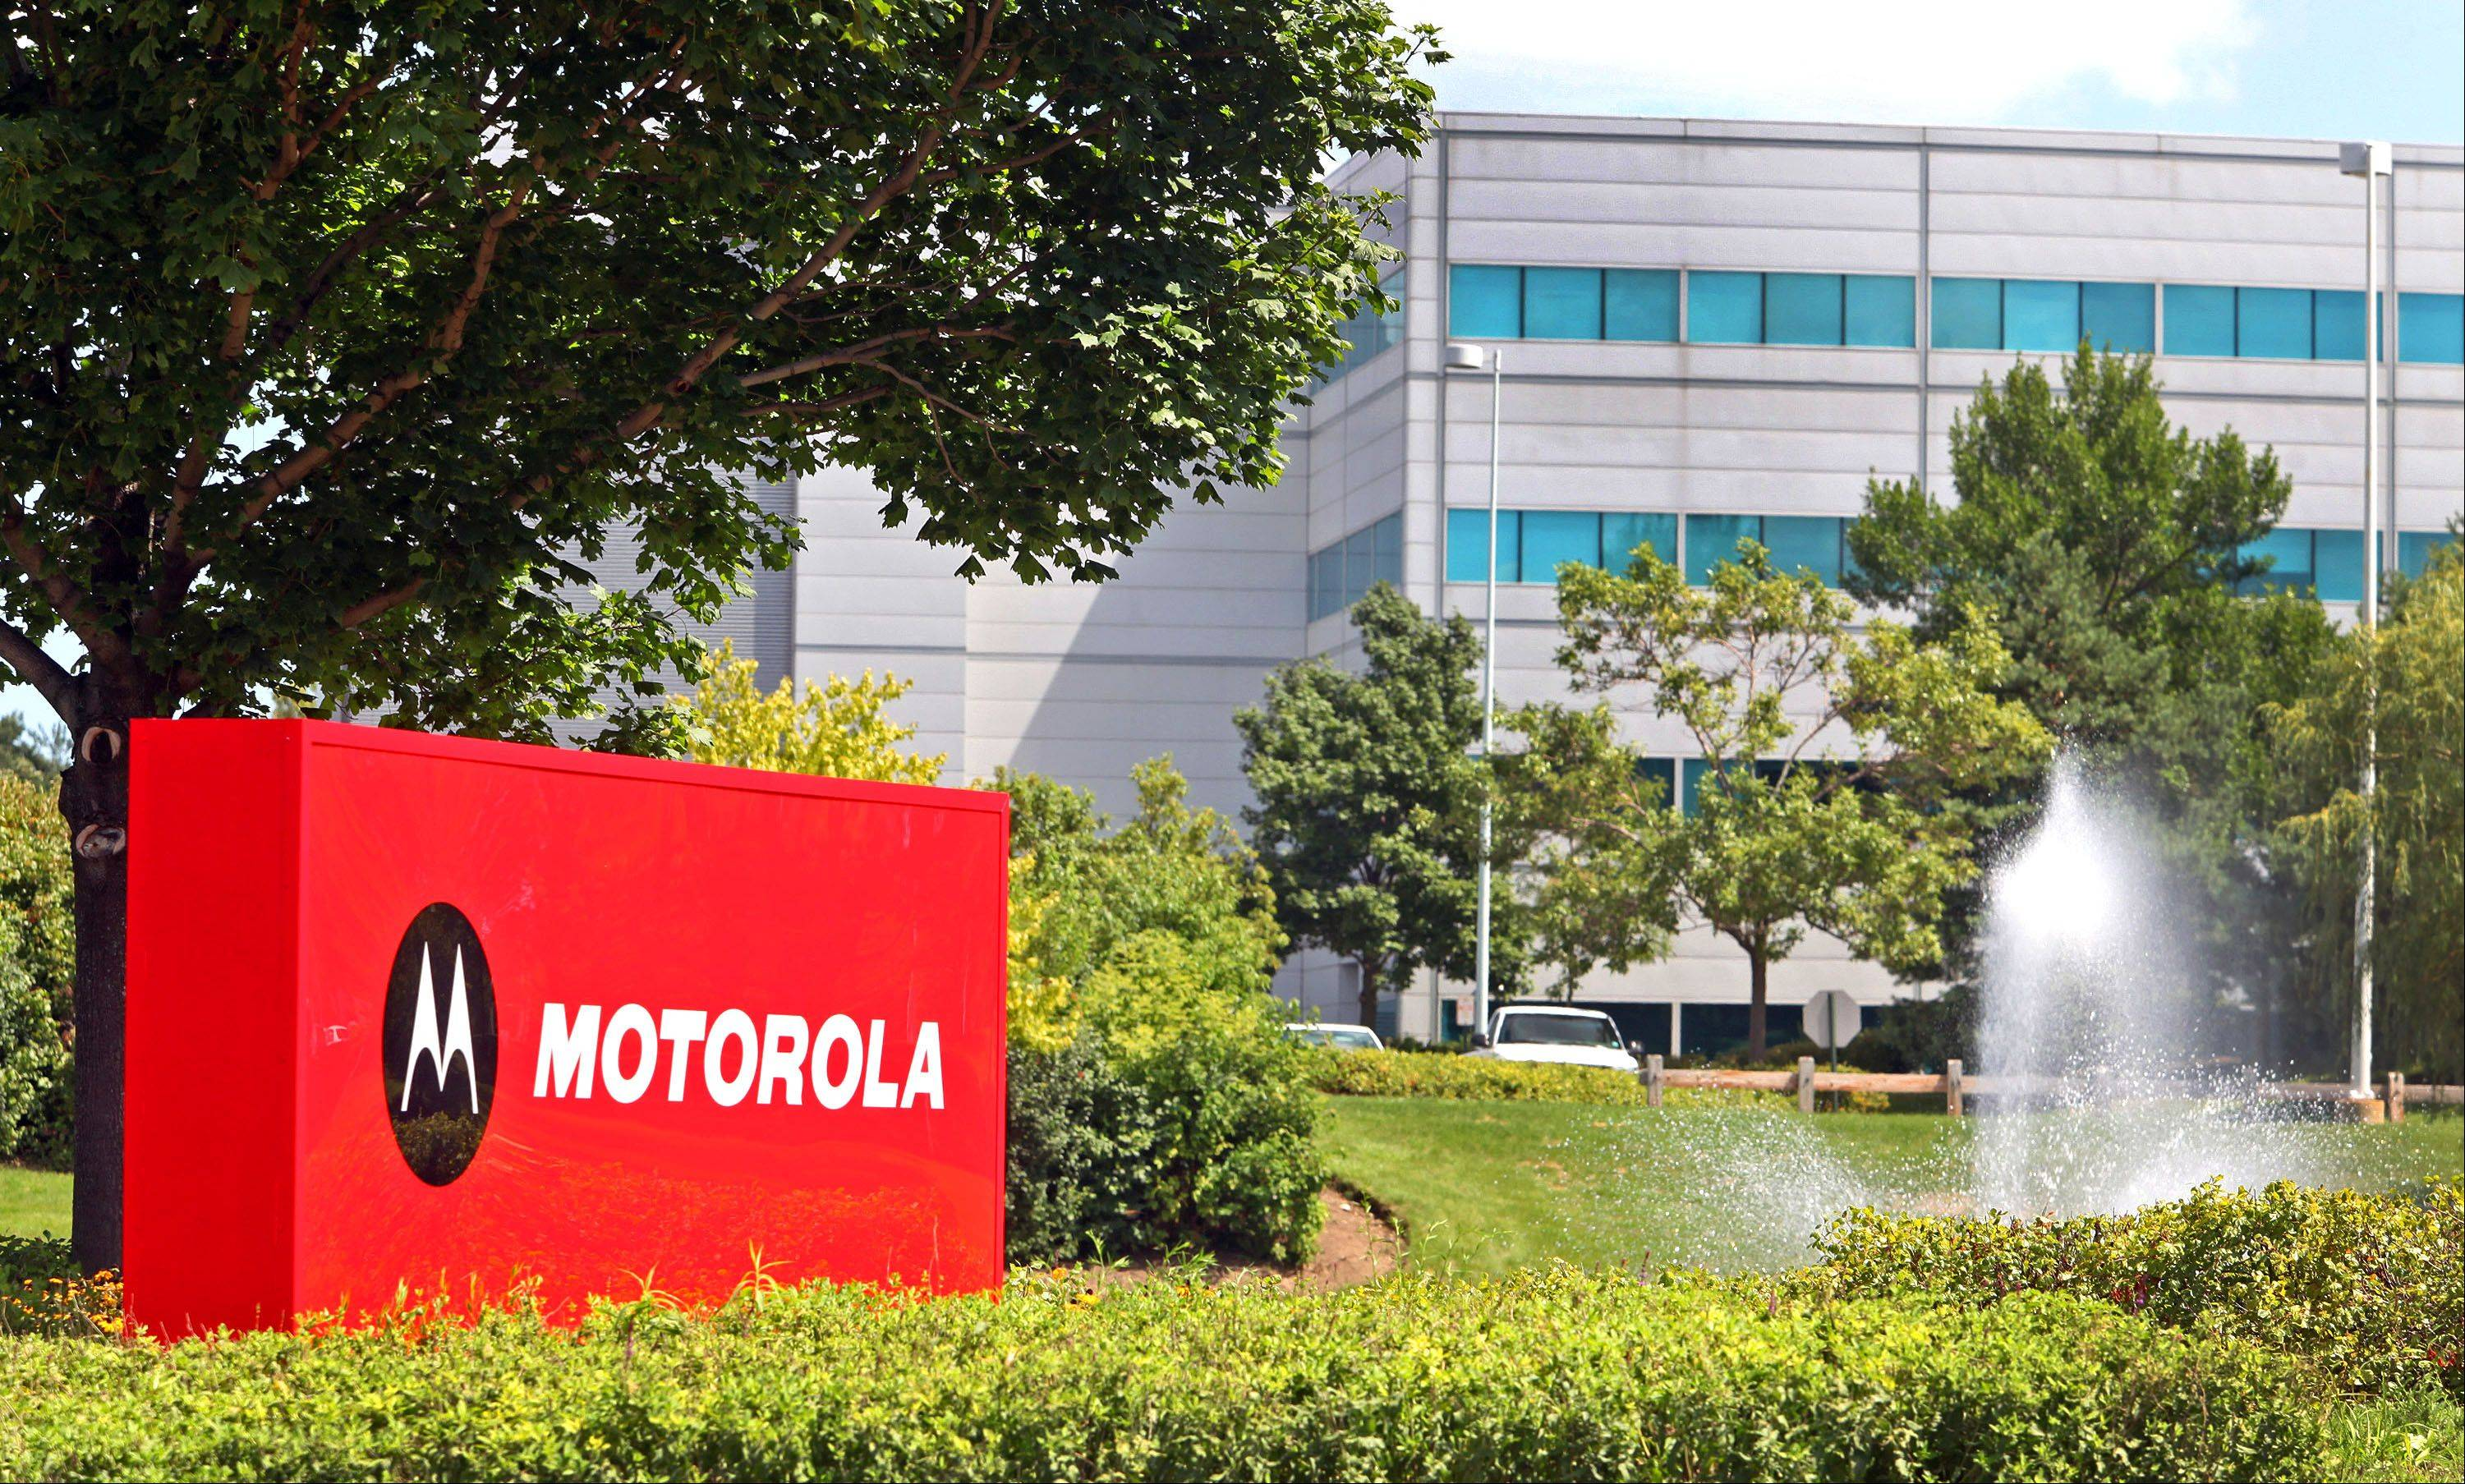 Motorola Mobility's Libertyville complex up for sale